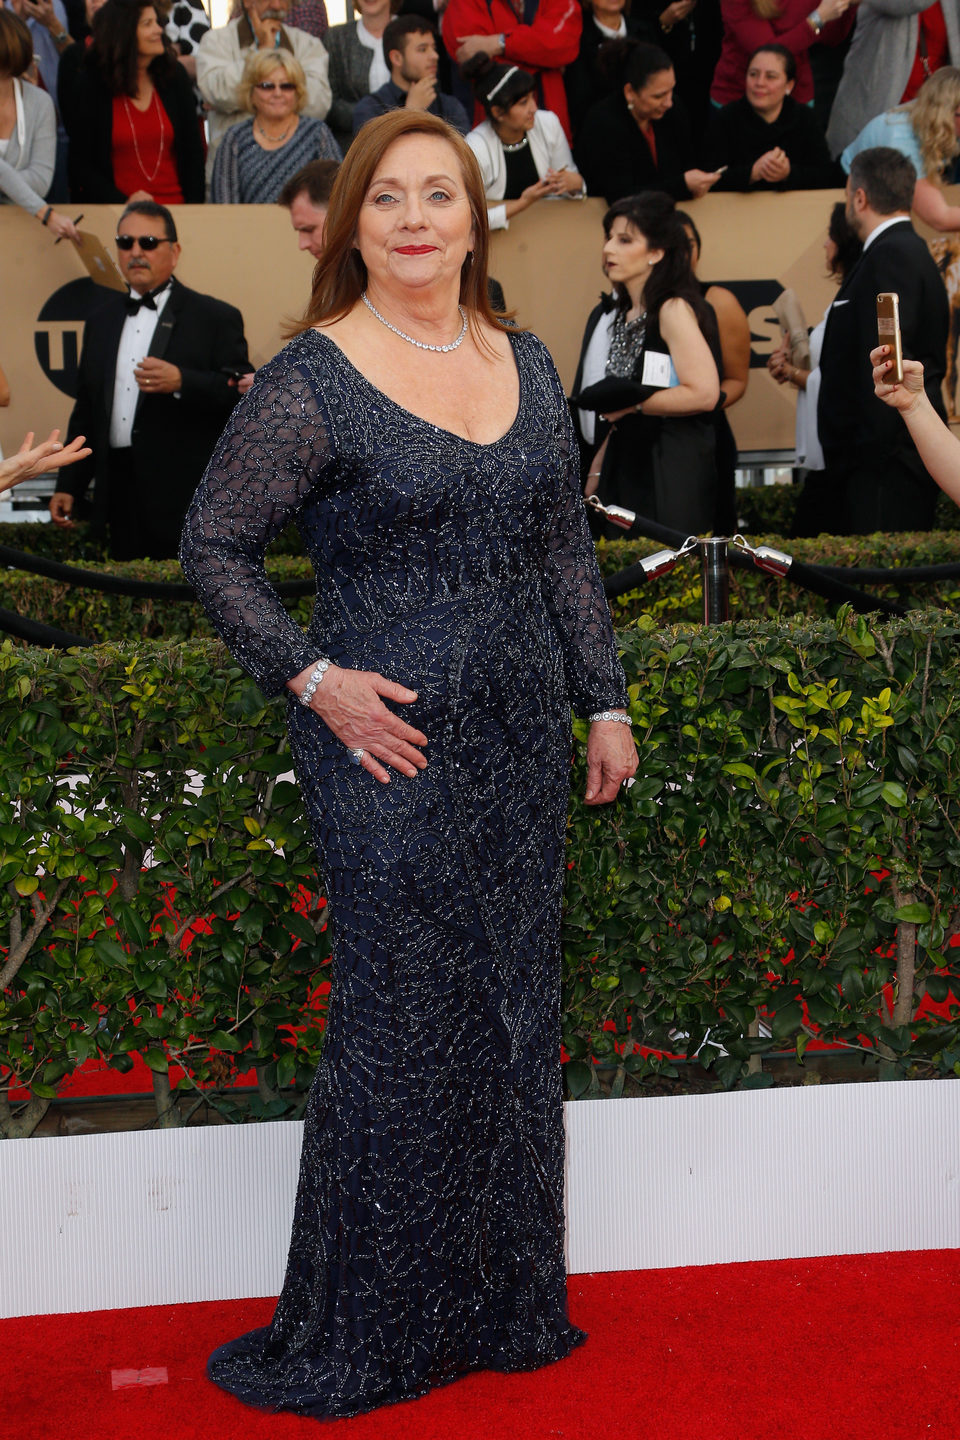 Dale Soules at the SAG Awards 2016 red carpet